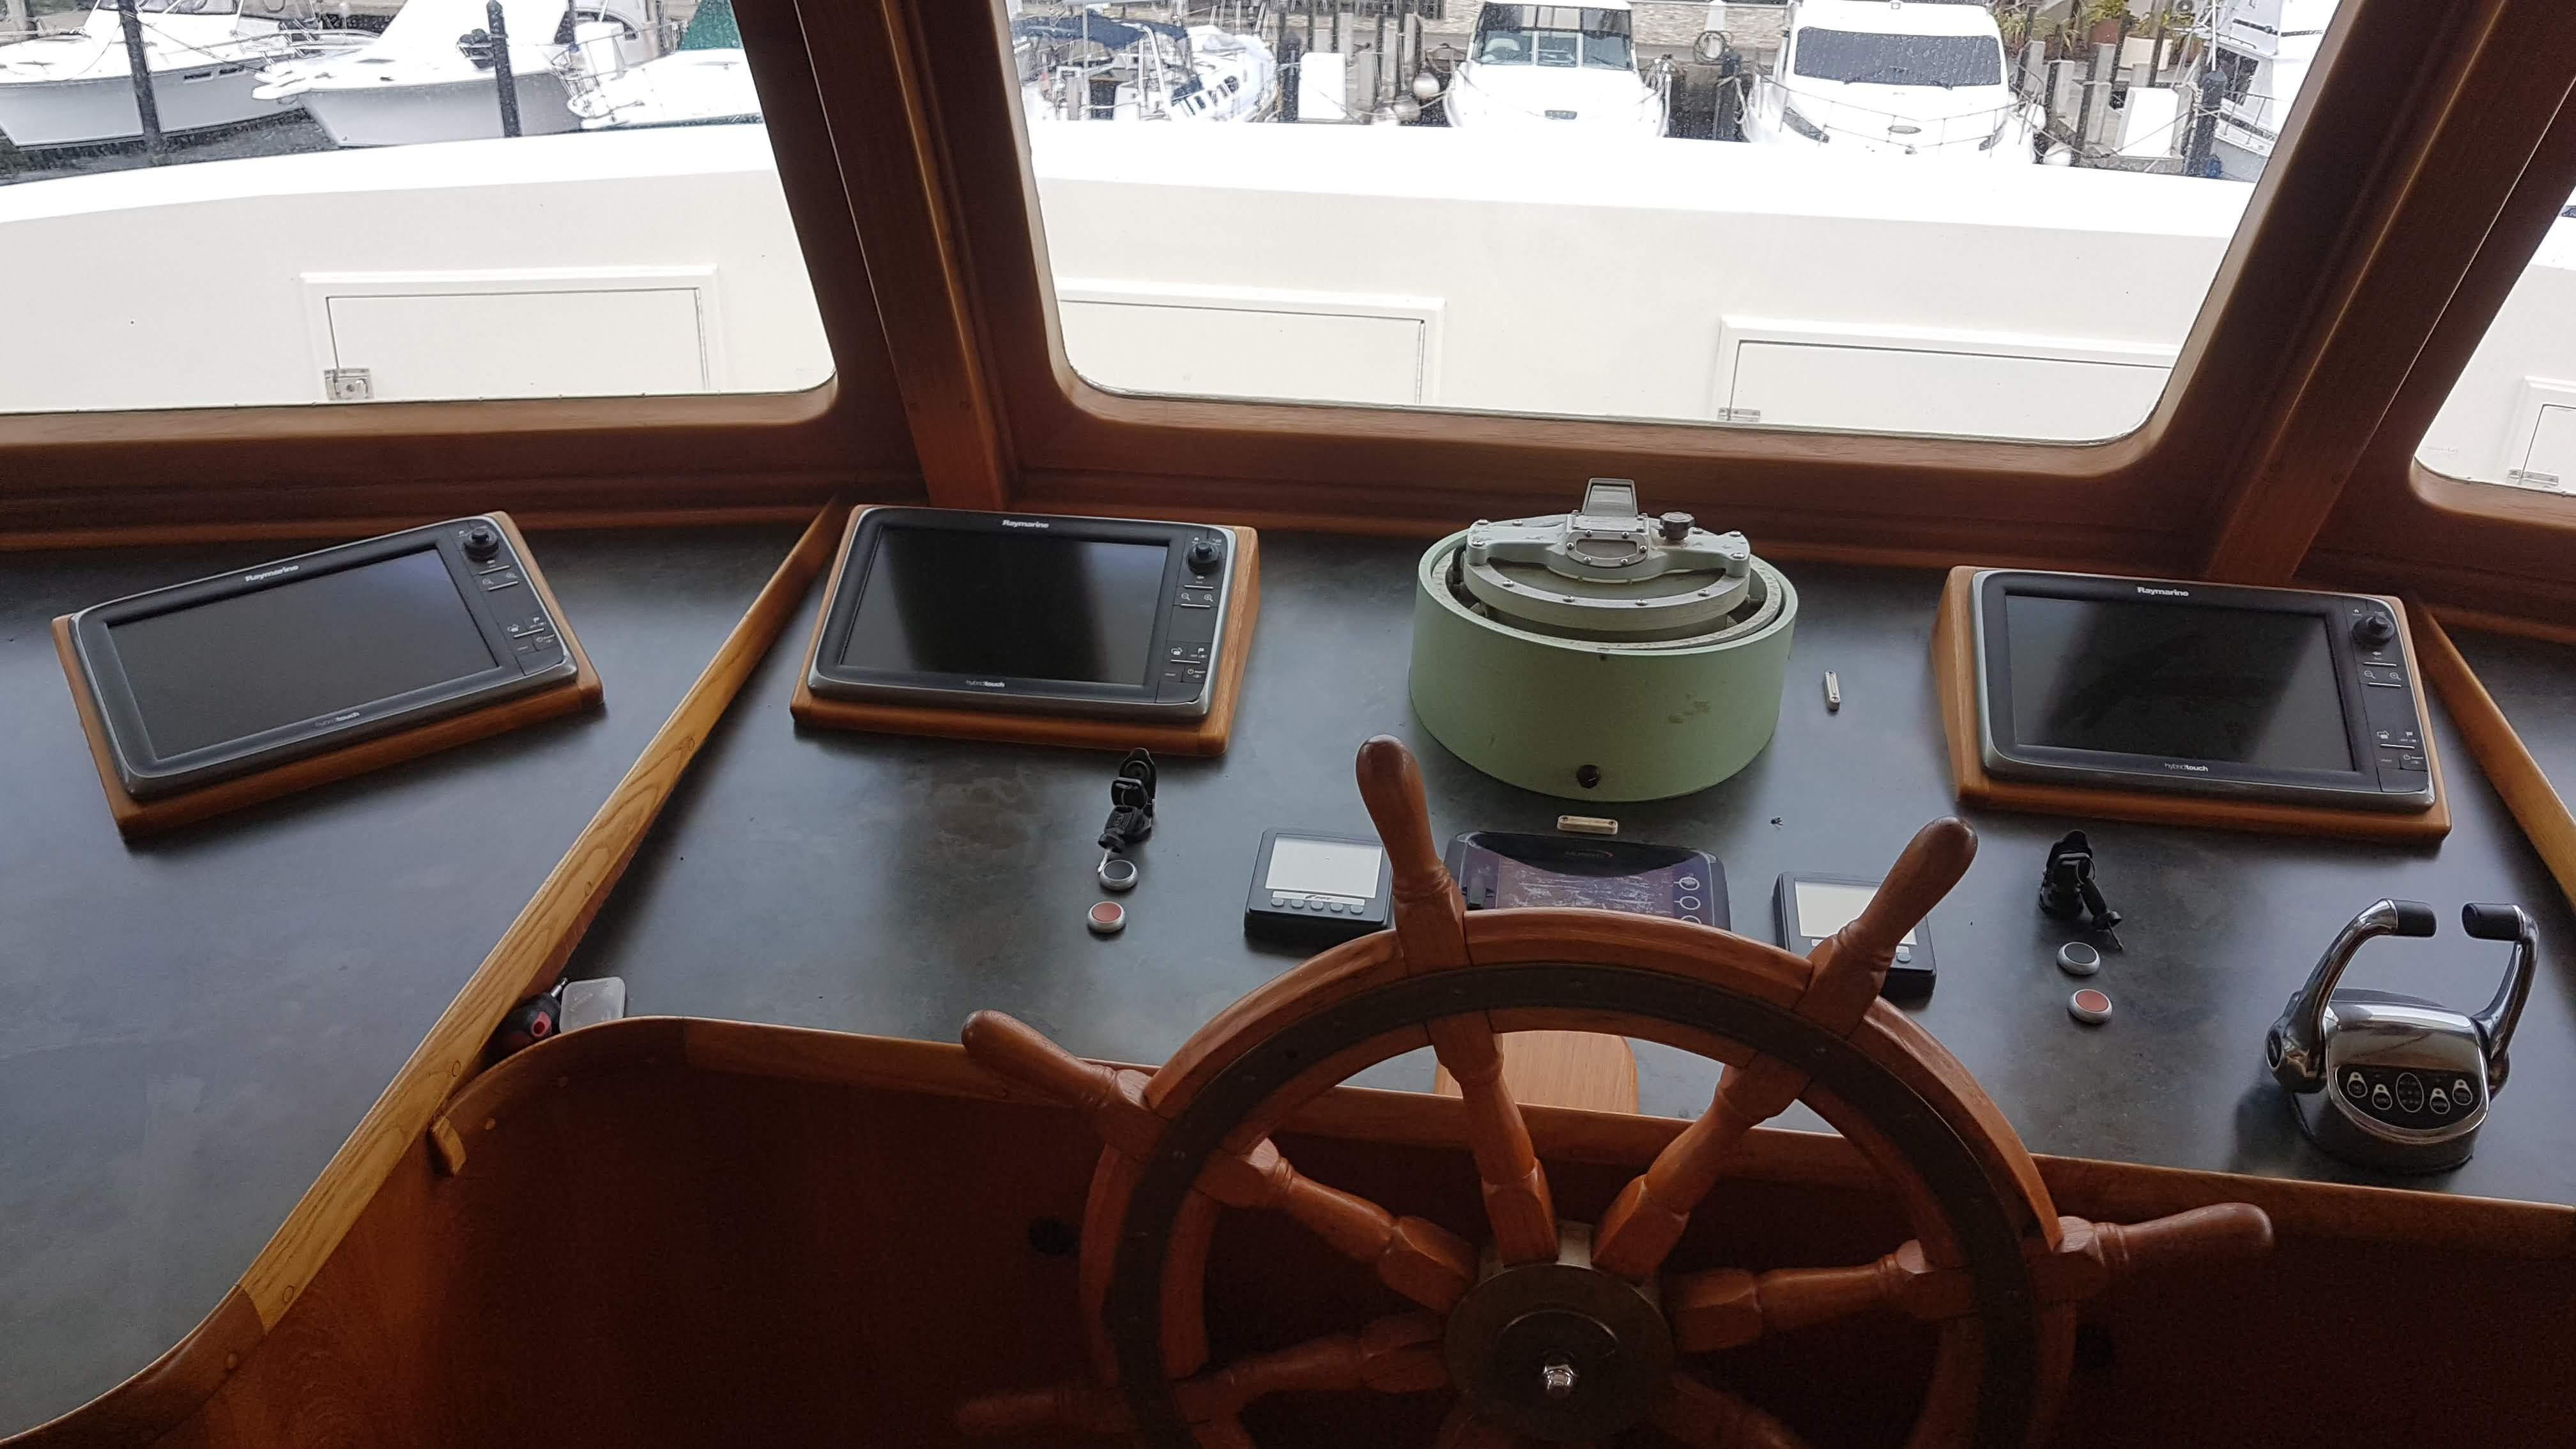 Instruments and steering